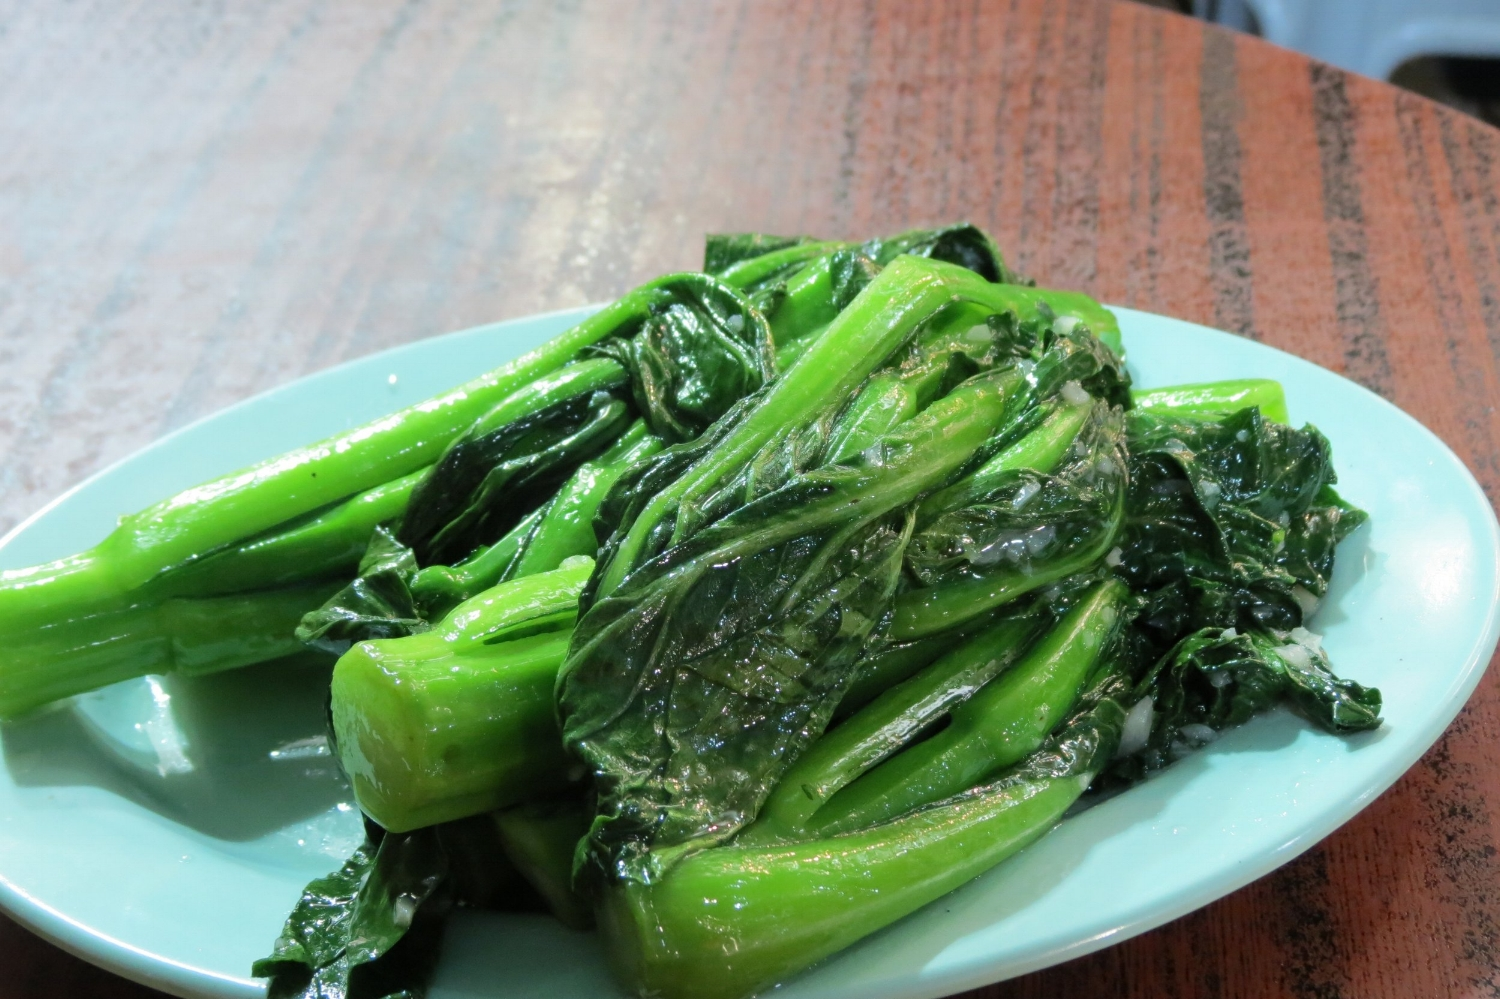 Gai lan or Chinese broccoli side dish at Ton Tai Seafood Restaurant, Temple Street Night Market, Hong Kong